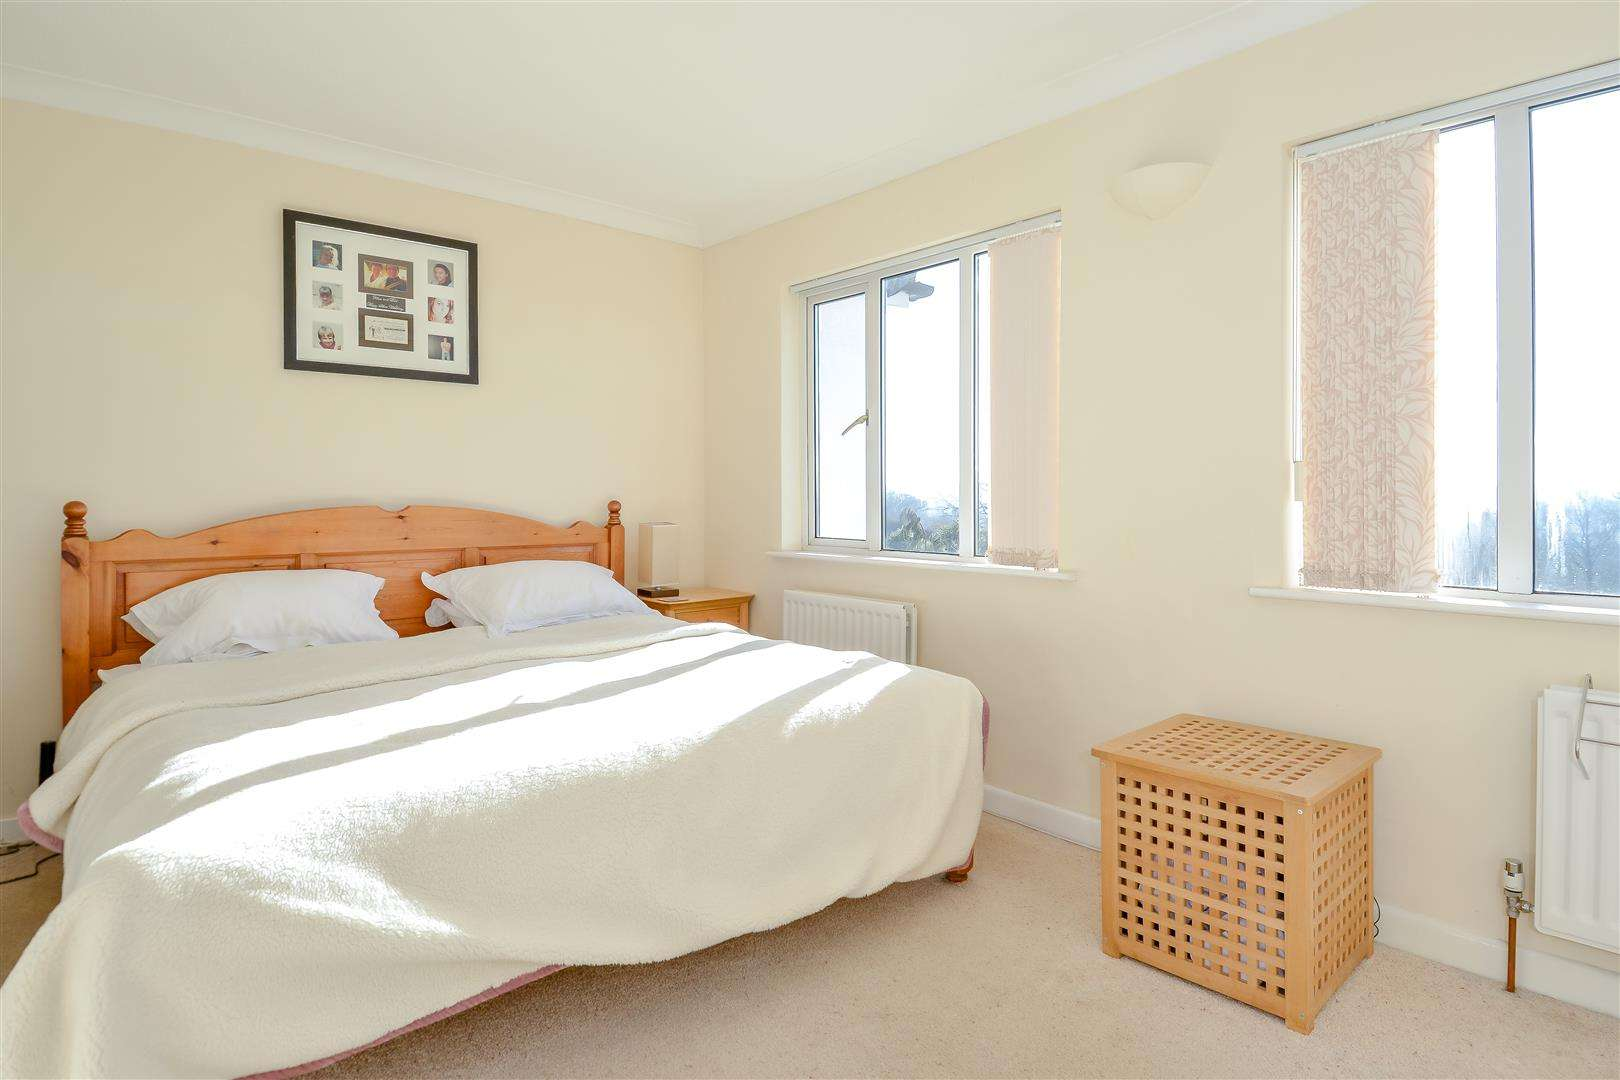 4 bed for sale in Merry Hill Road, Bushey - (Property Image 8)